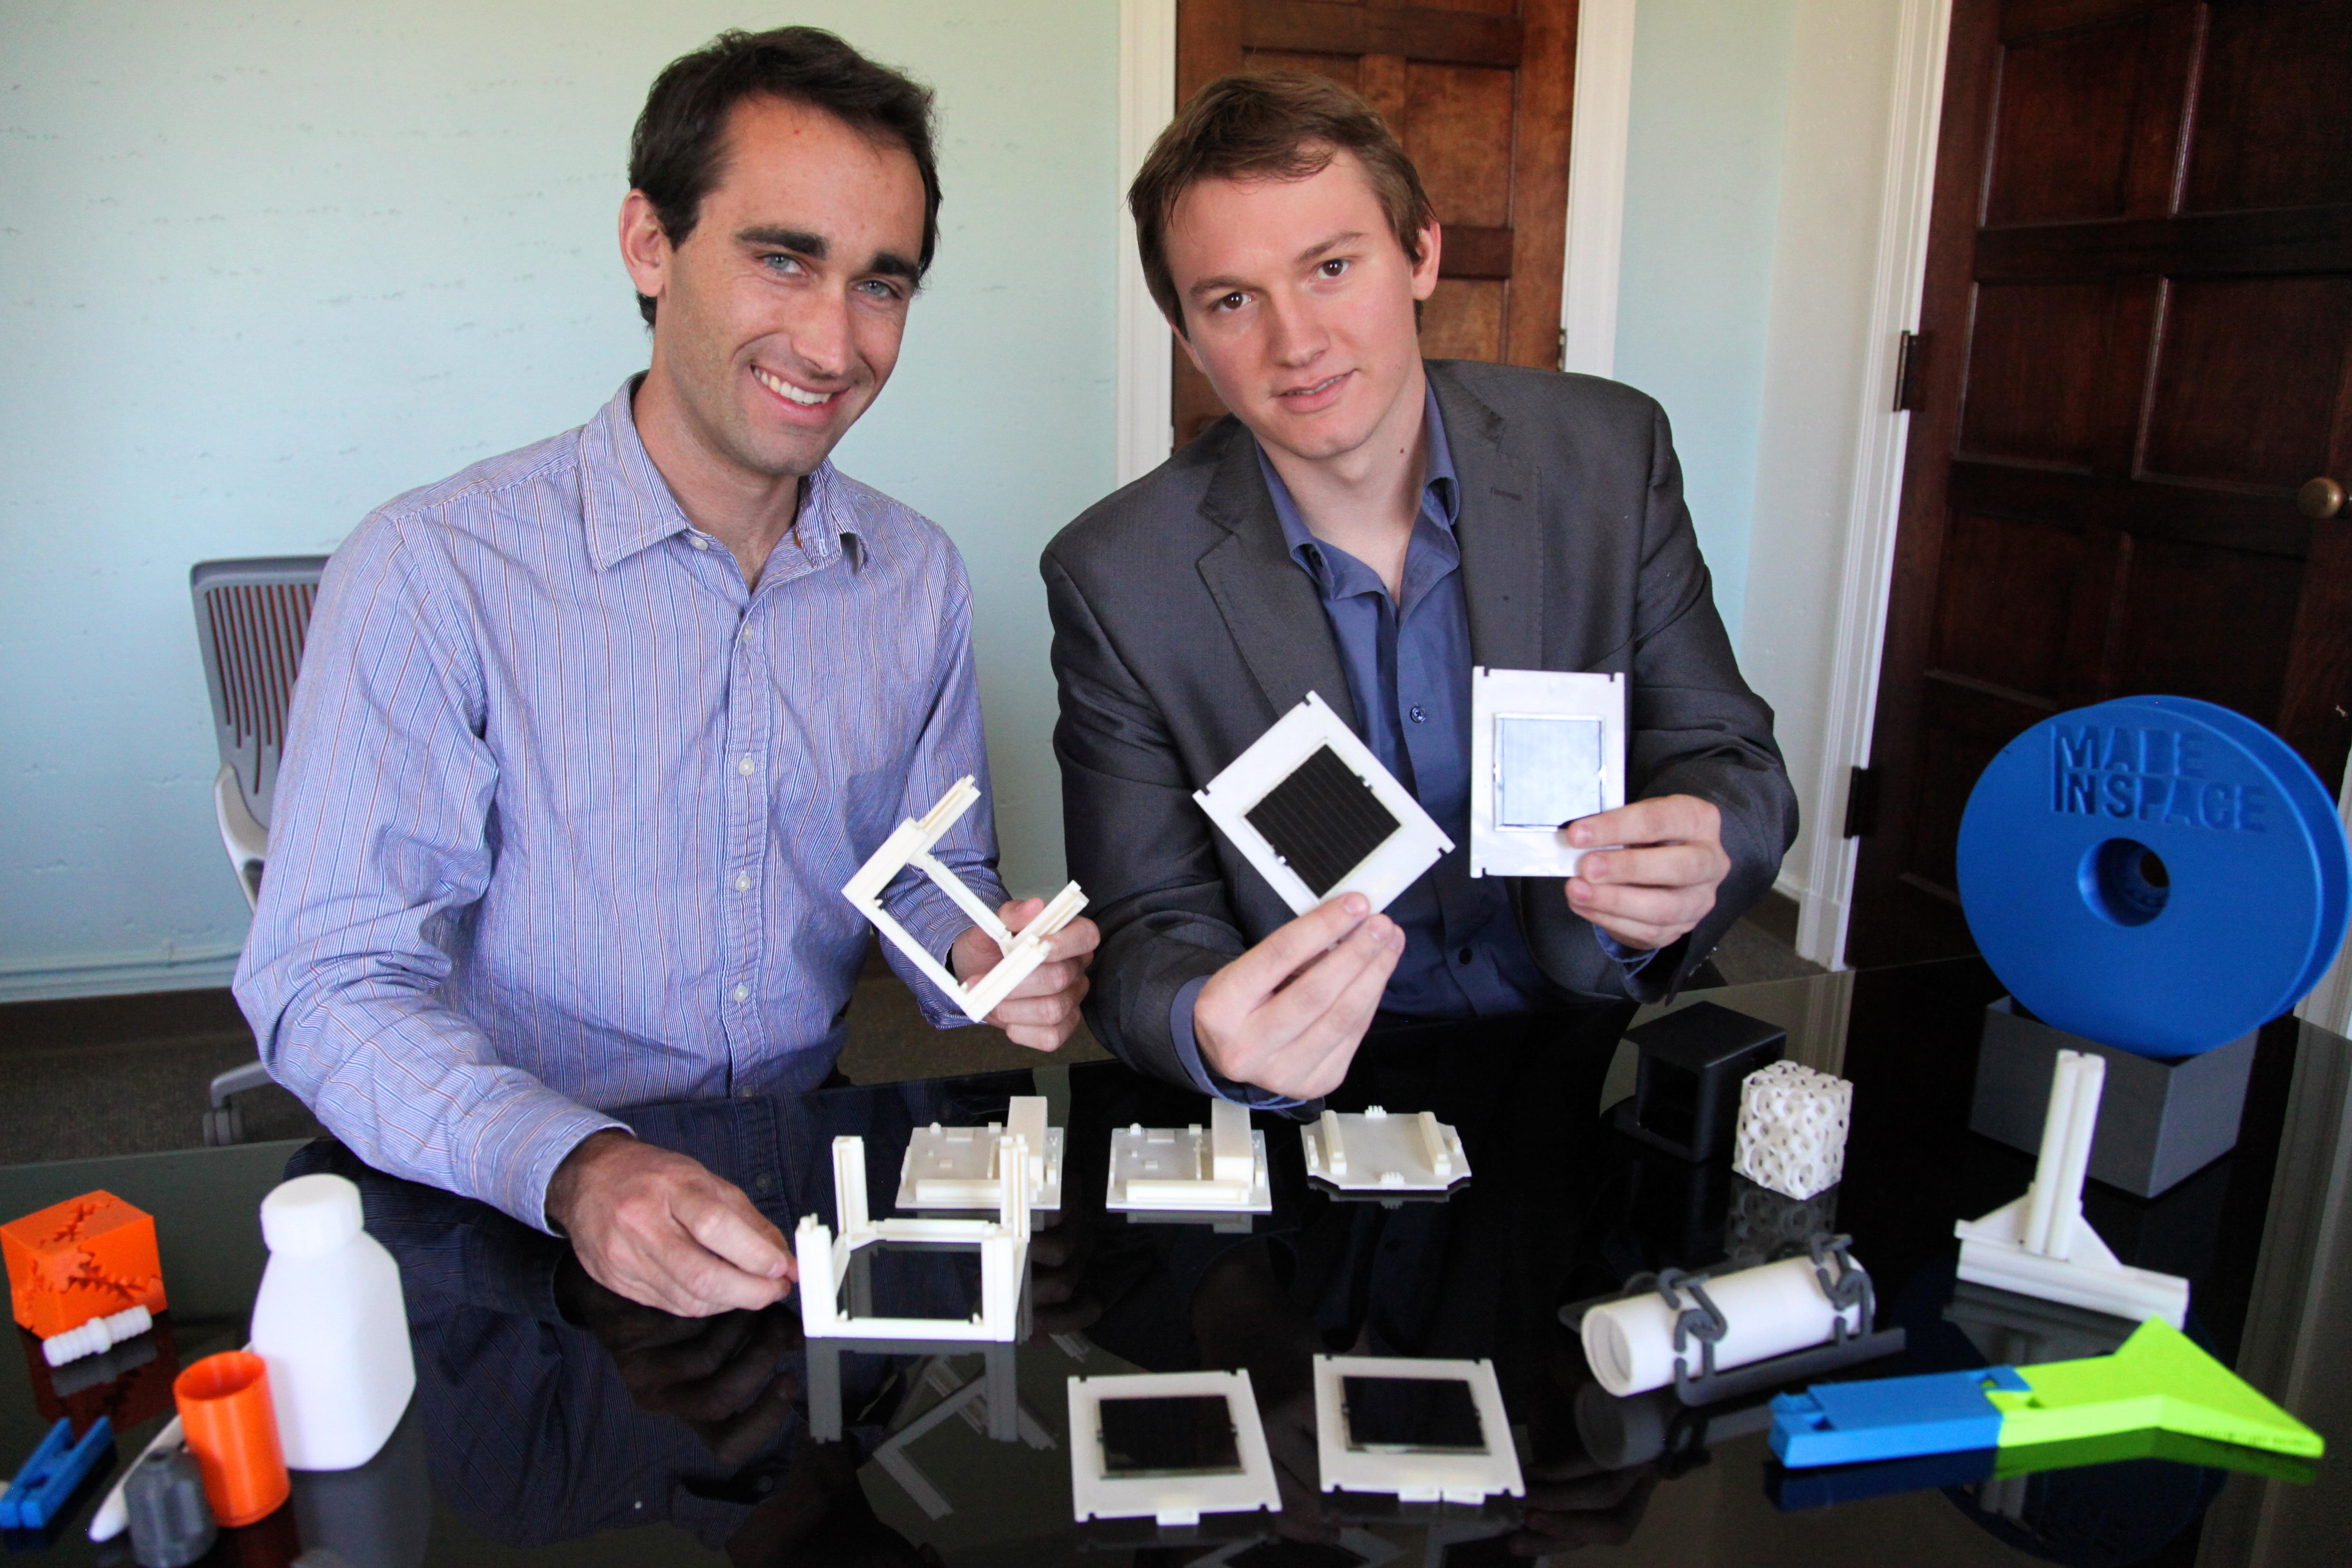 CTO Jason Dunn and CEO Aaron Kemmer show off a 3D printed CubeSat, plus other parts that could be made aboard the ISS. Photo by Signe Brewster.